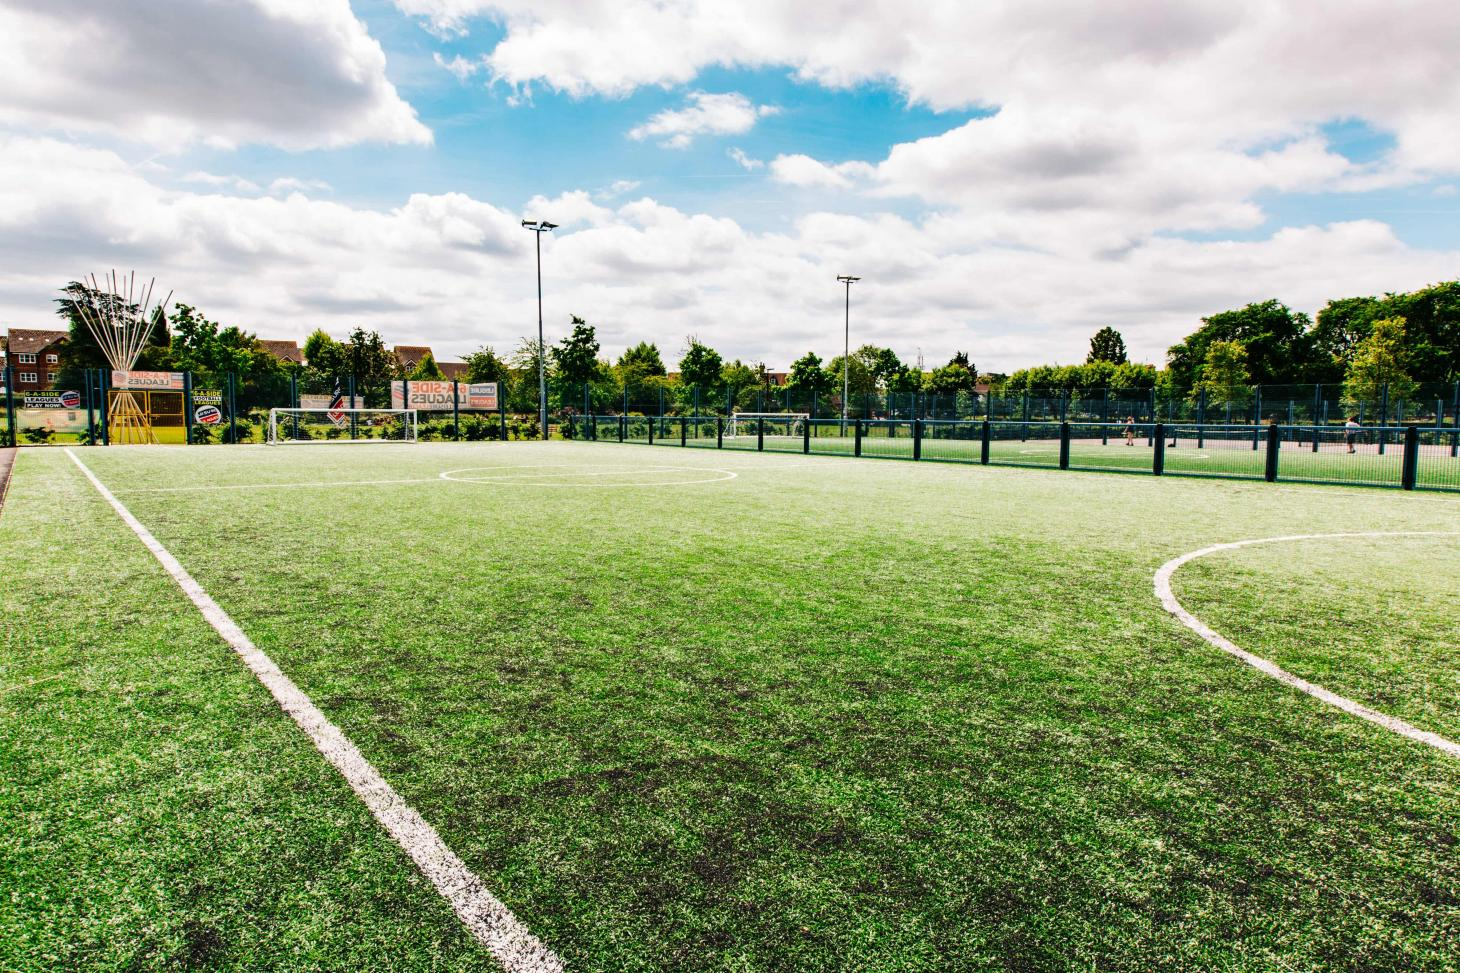 Aqua Vale Swimming and Fitness Centre 6 a side | 3G Astroturf football pitch